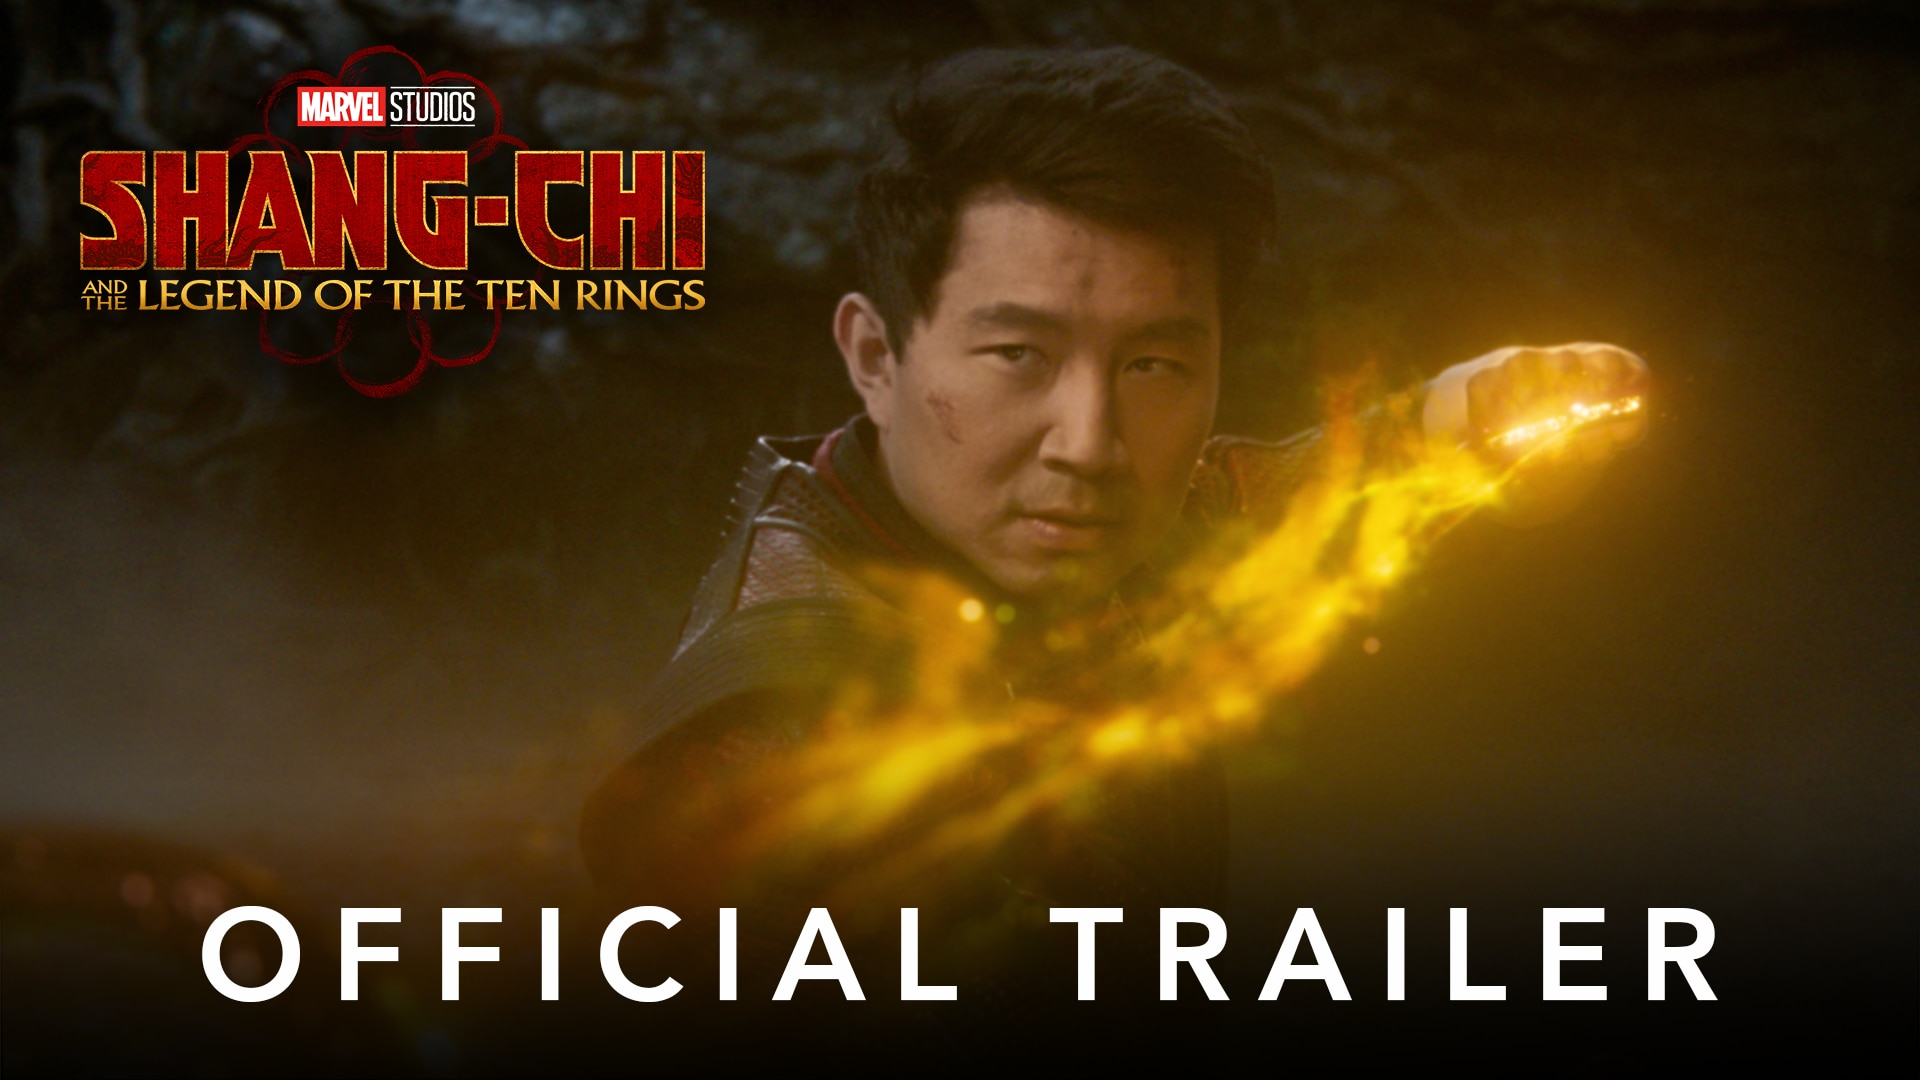 Official Trailer | Marvel Studios' Shang-Chi and the Legend of the Ten Rings - VN